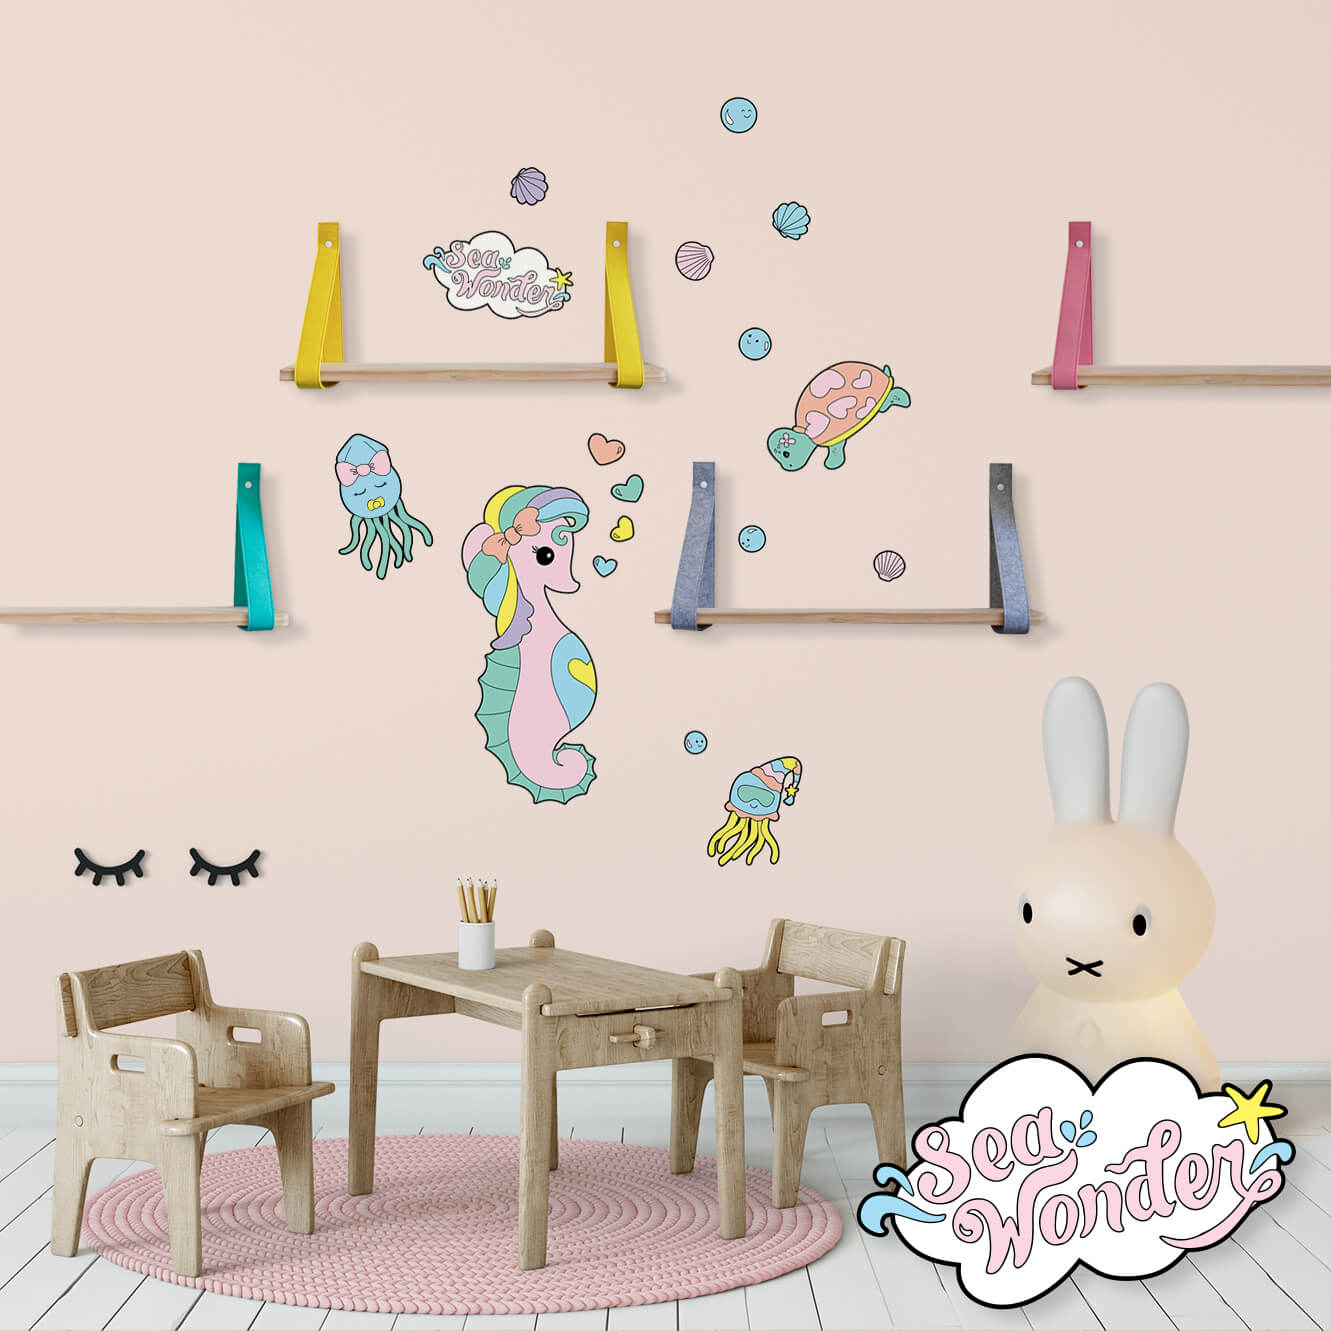 Sea creature wall decals featuring baby seahorse, turtle and squid in a baby nursery.